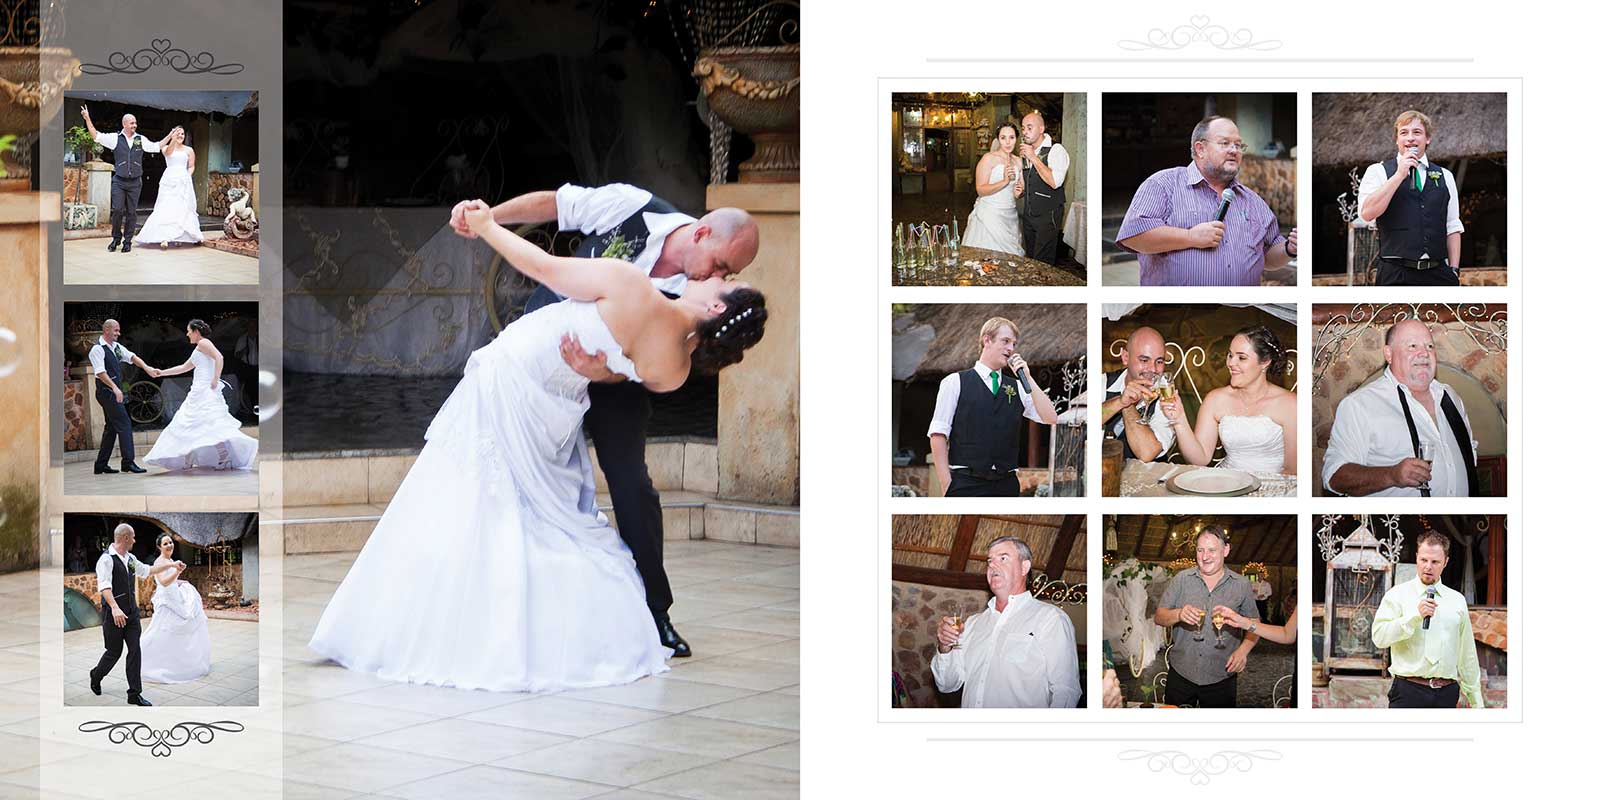 Dance floor opening at intimate bohemian wedding